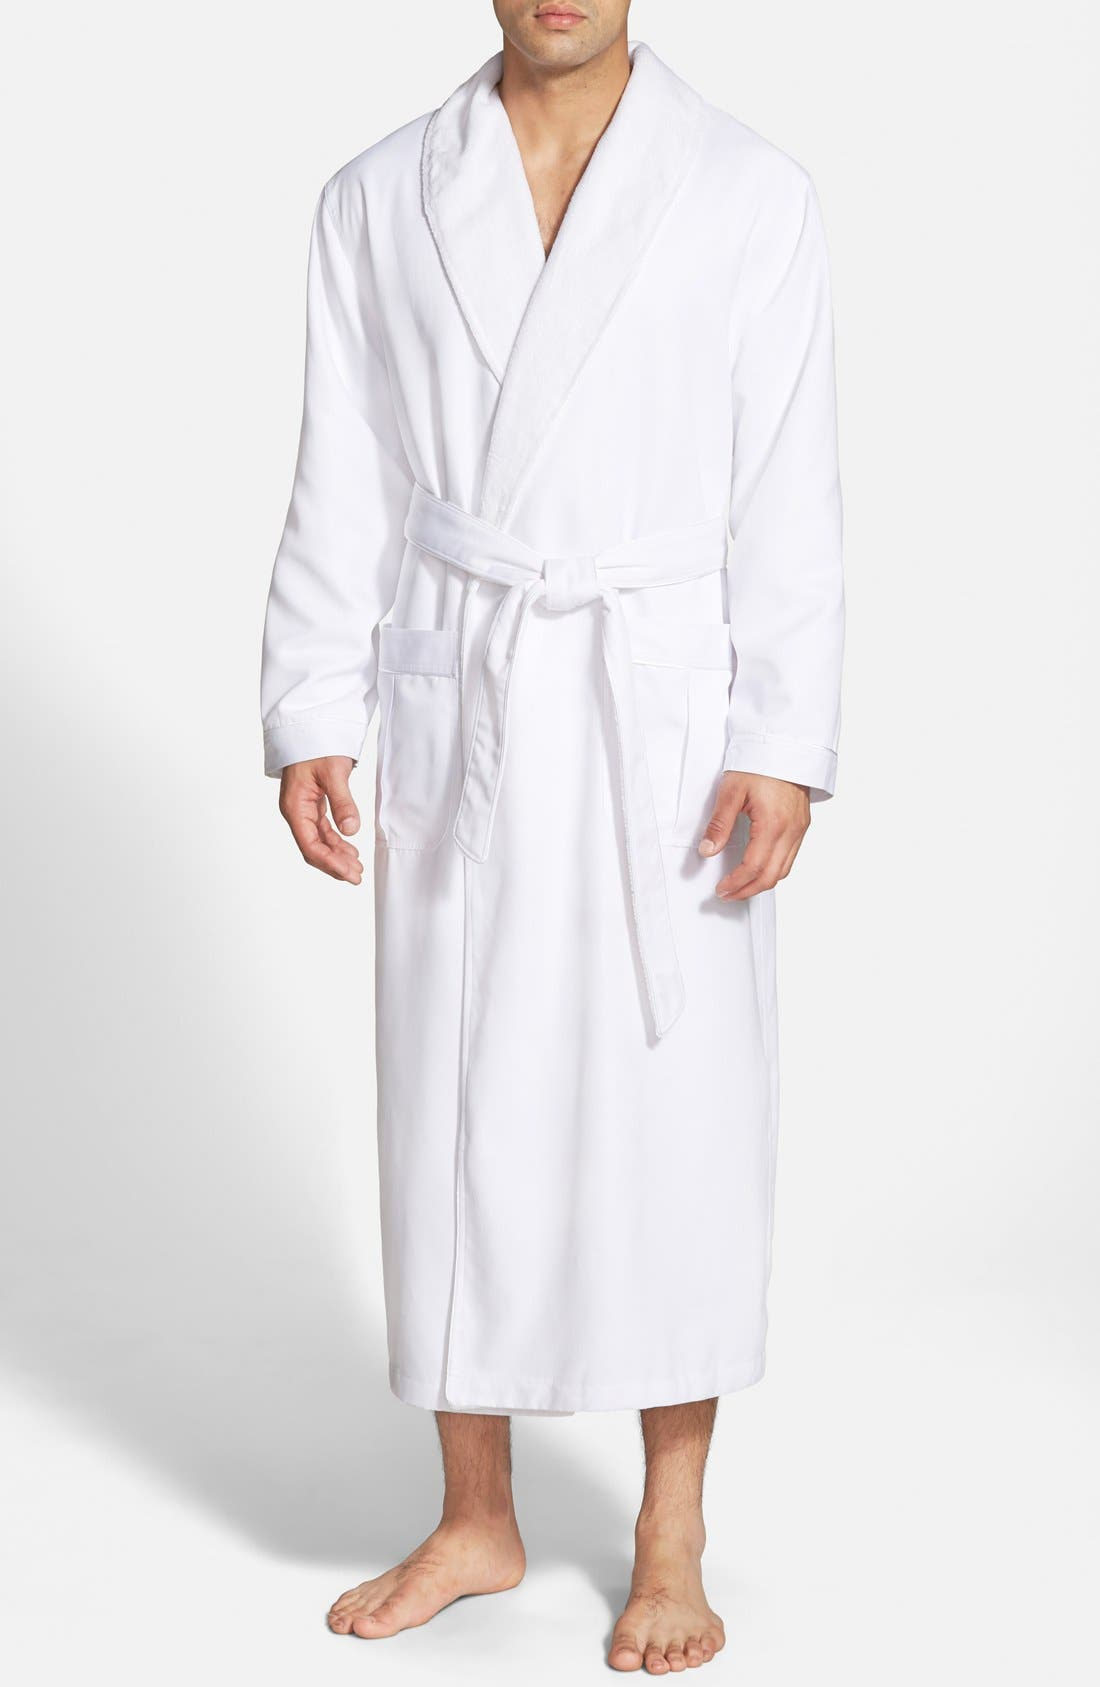 FLEECE LINED ROBE